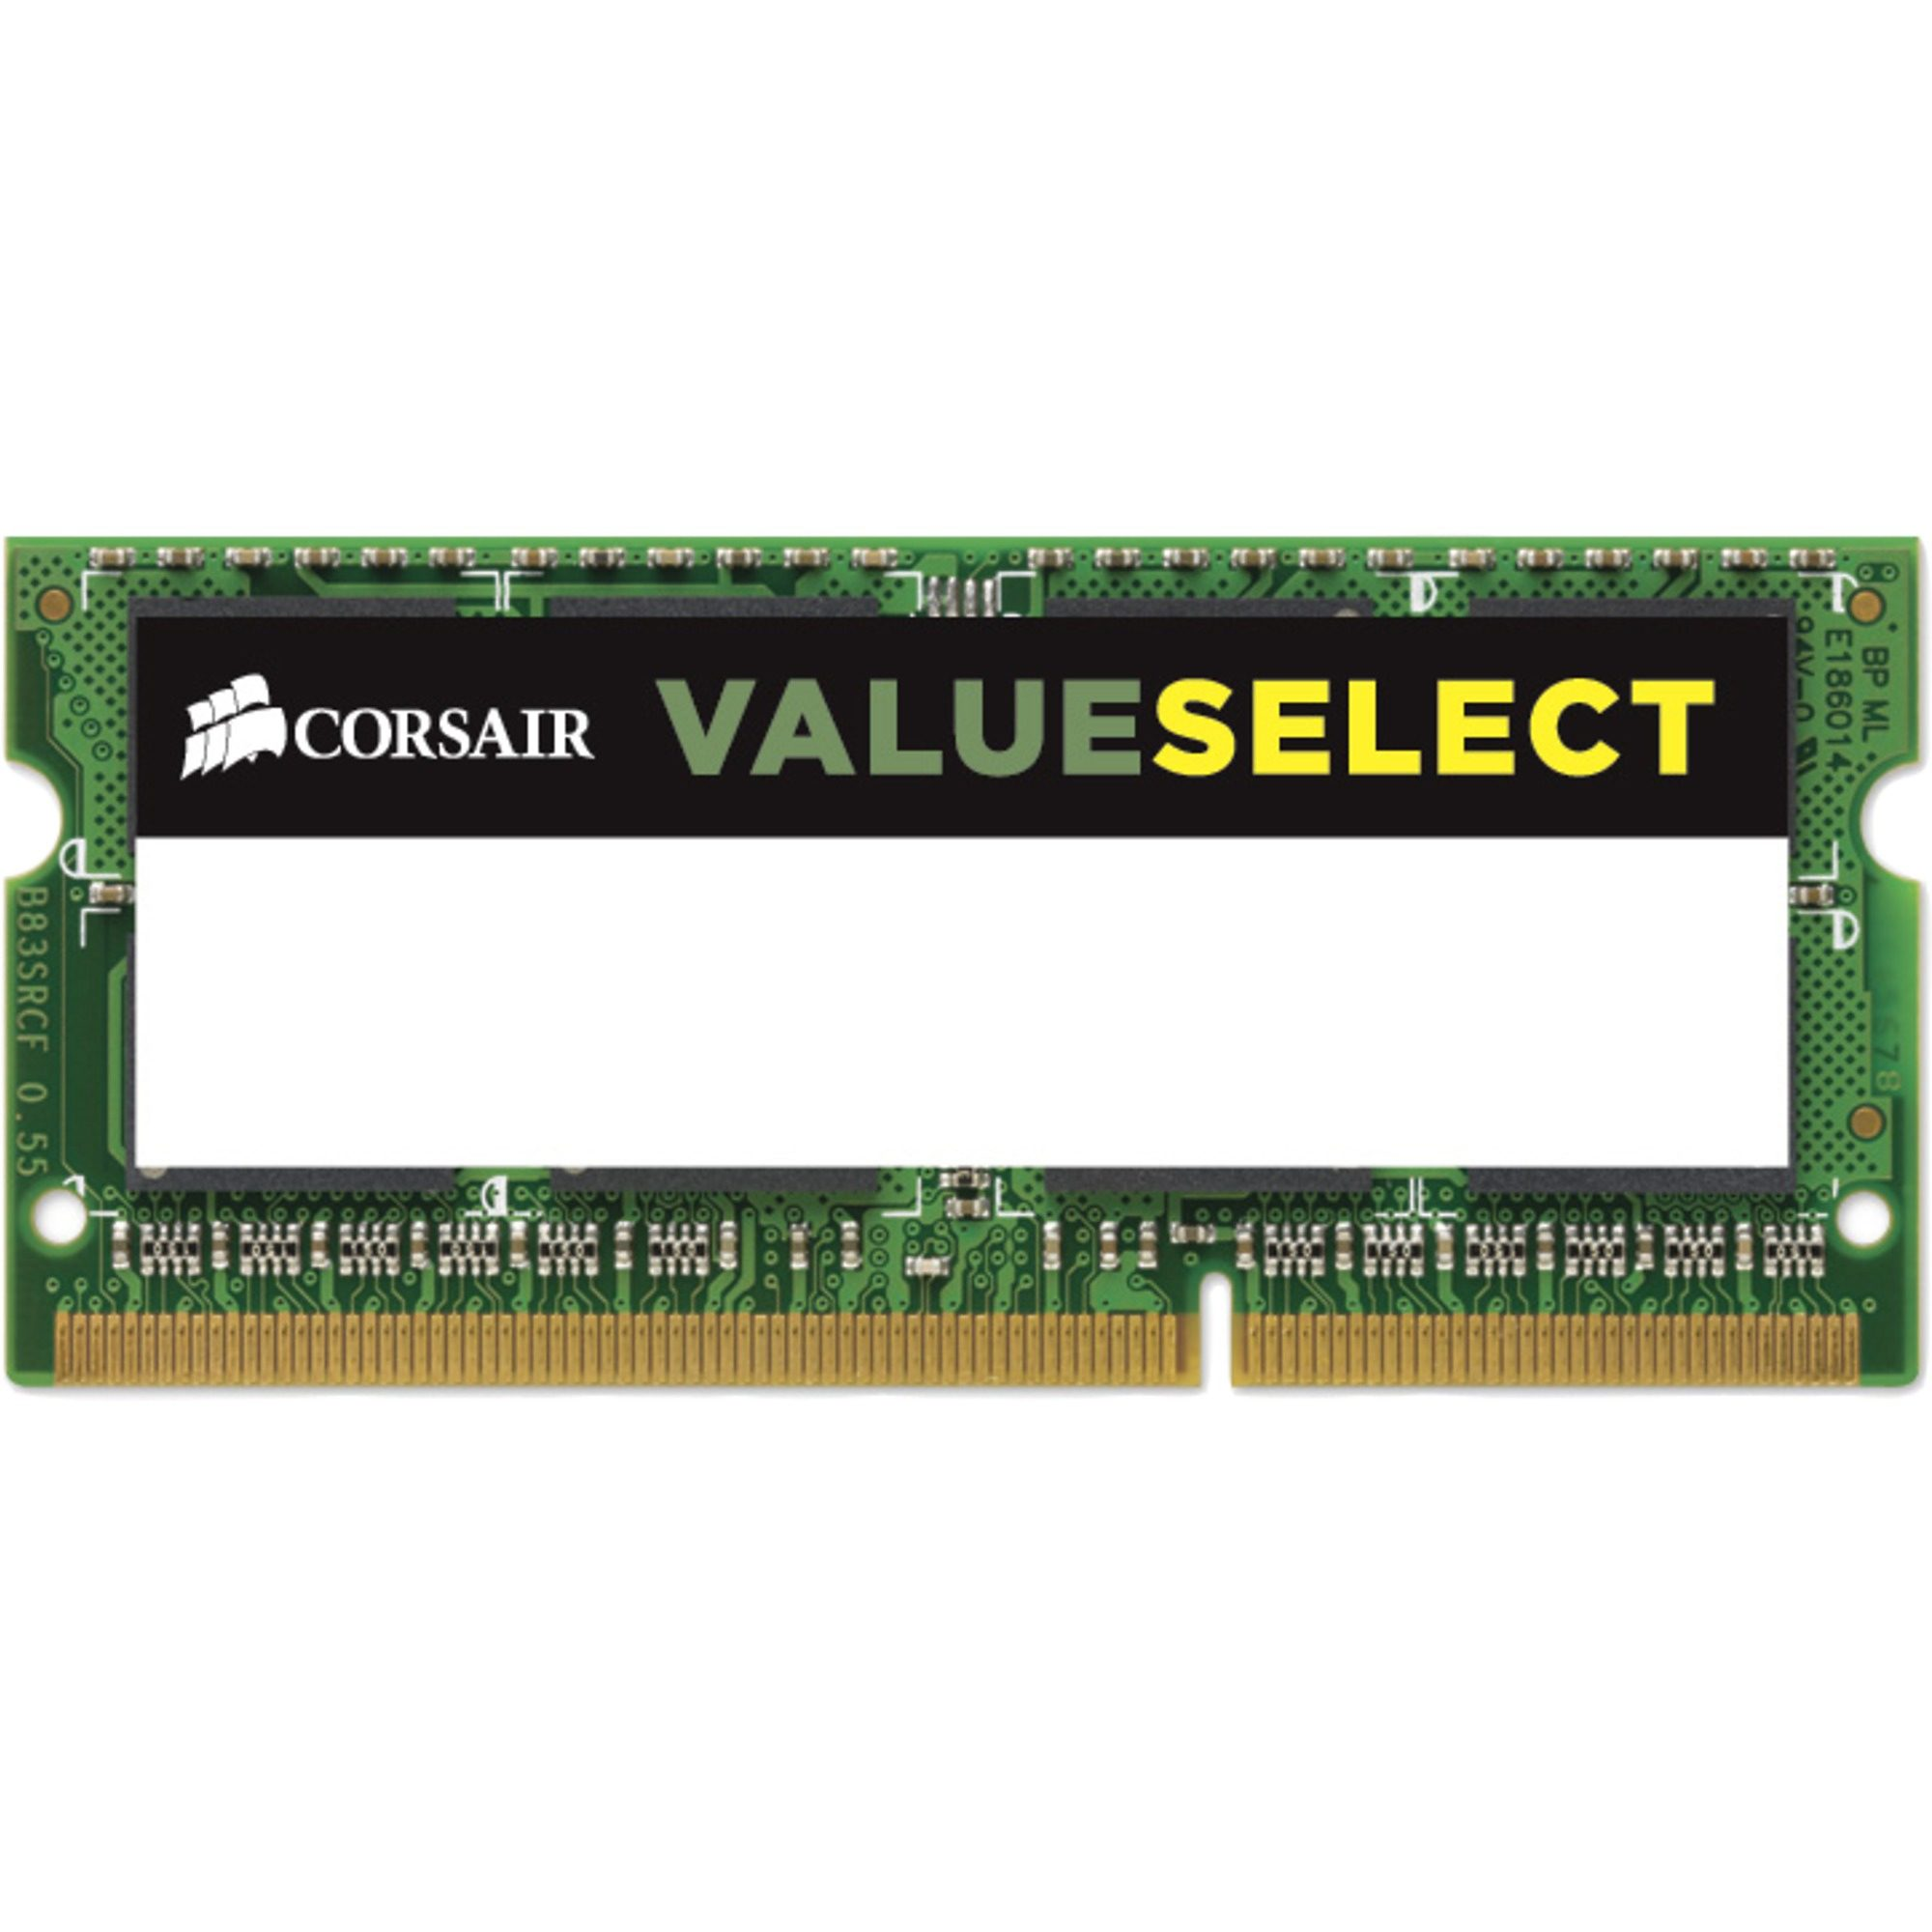 Corsair ValueSelect Arbeitsspeicher »SO-DIMM 4 GB DDR3-1600«